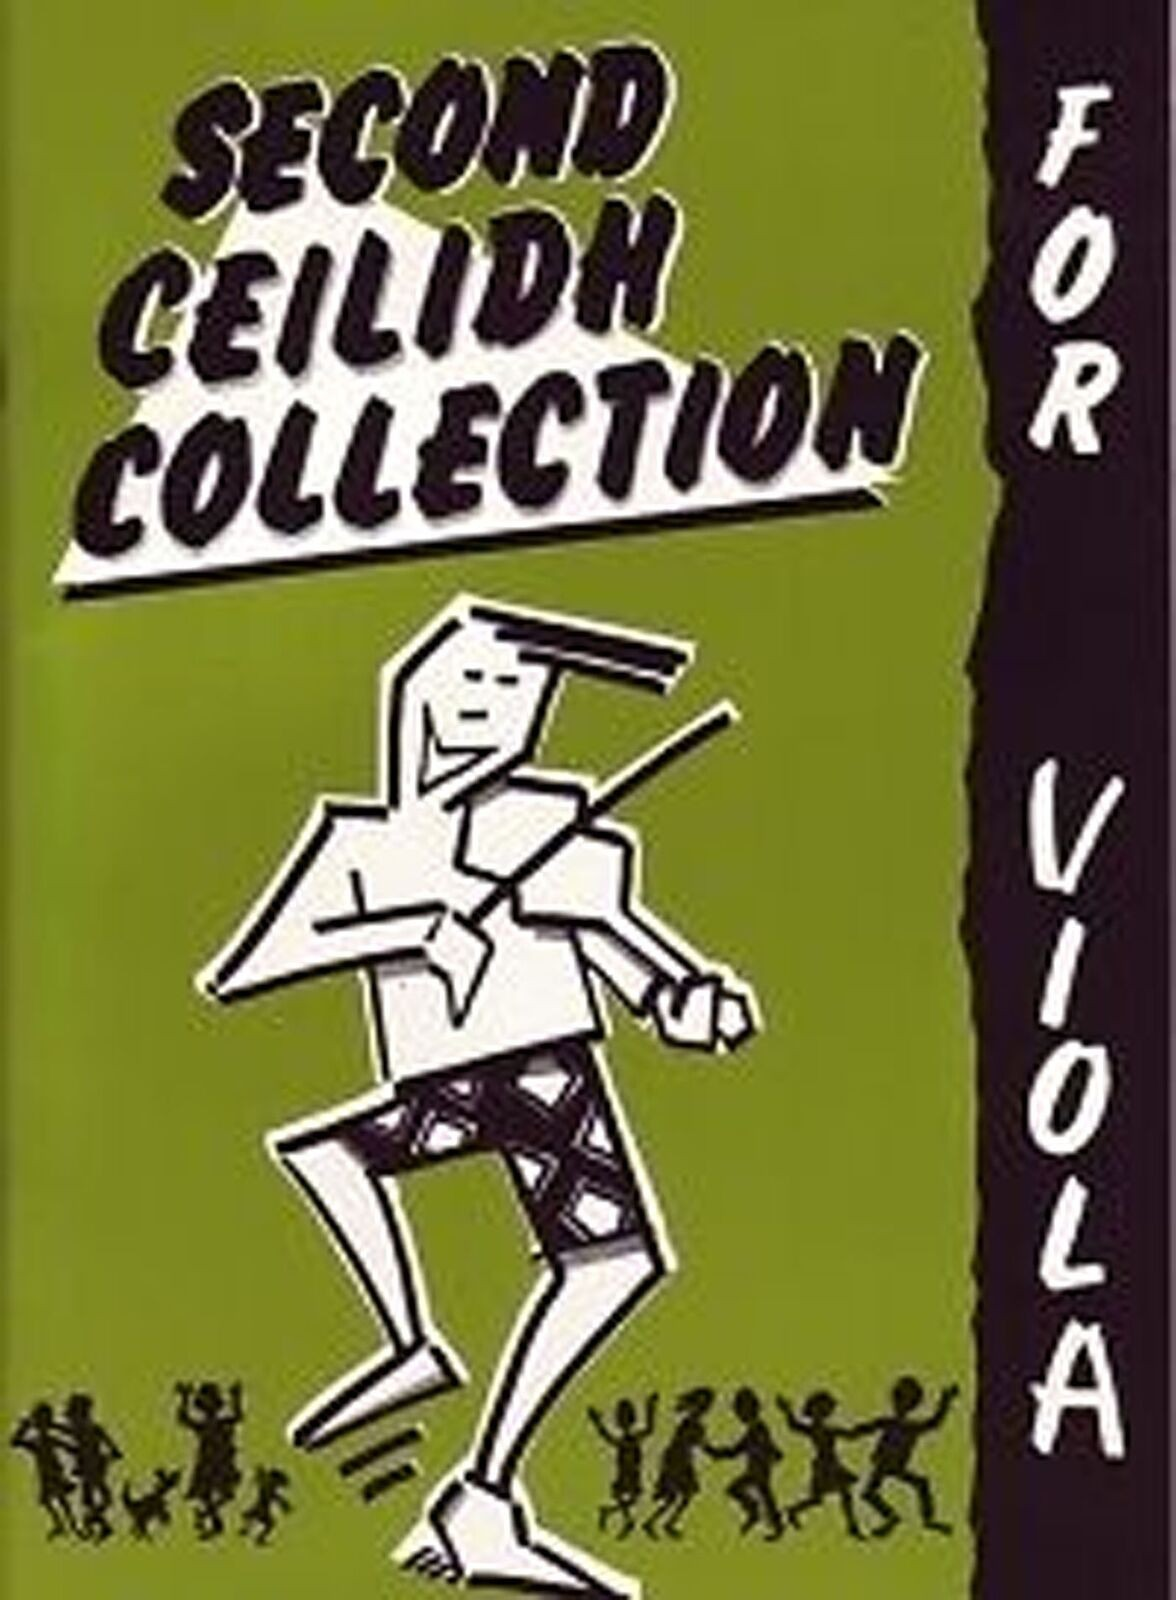 The Second Ceilidh Collection For Viola Music Book Scottish Fiddle S148